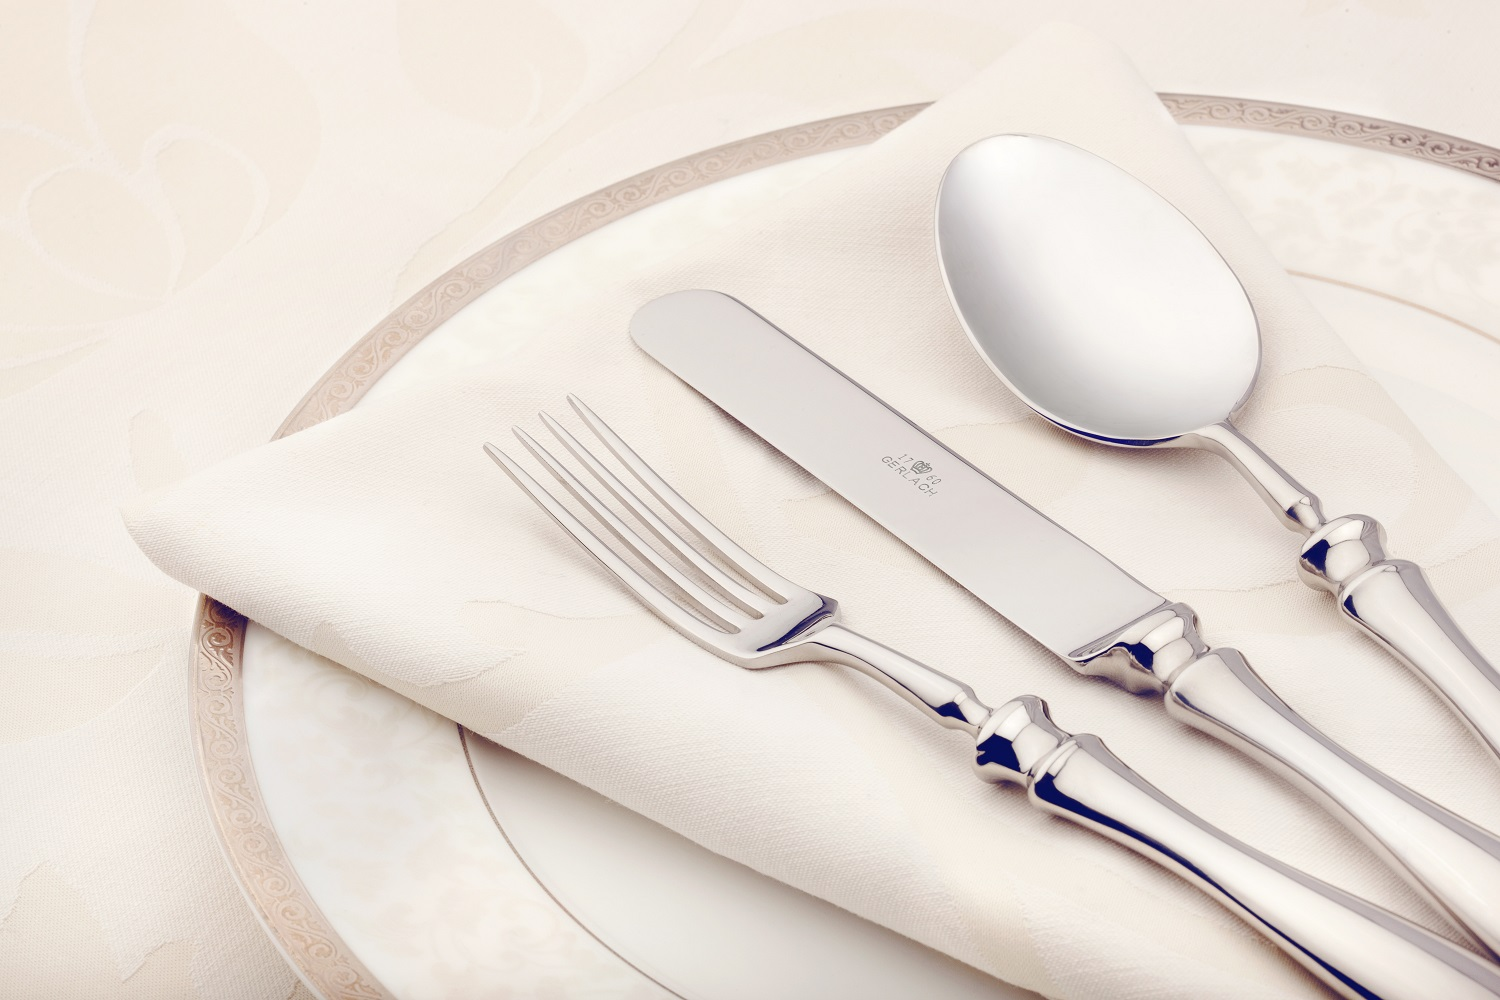 The Retro cutlery